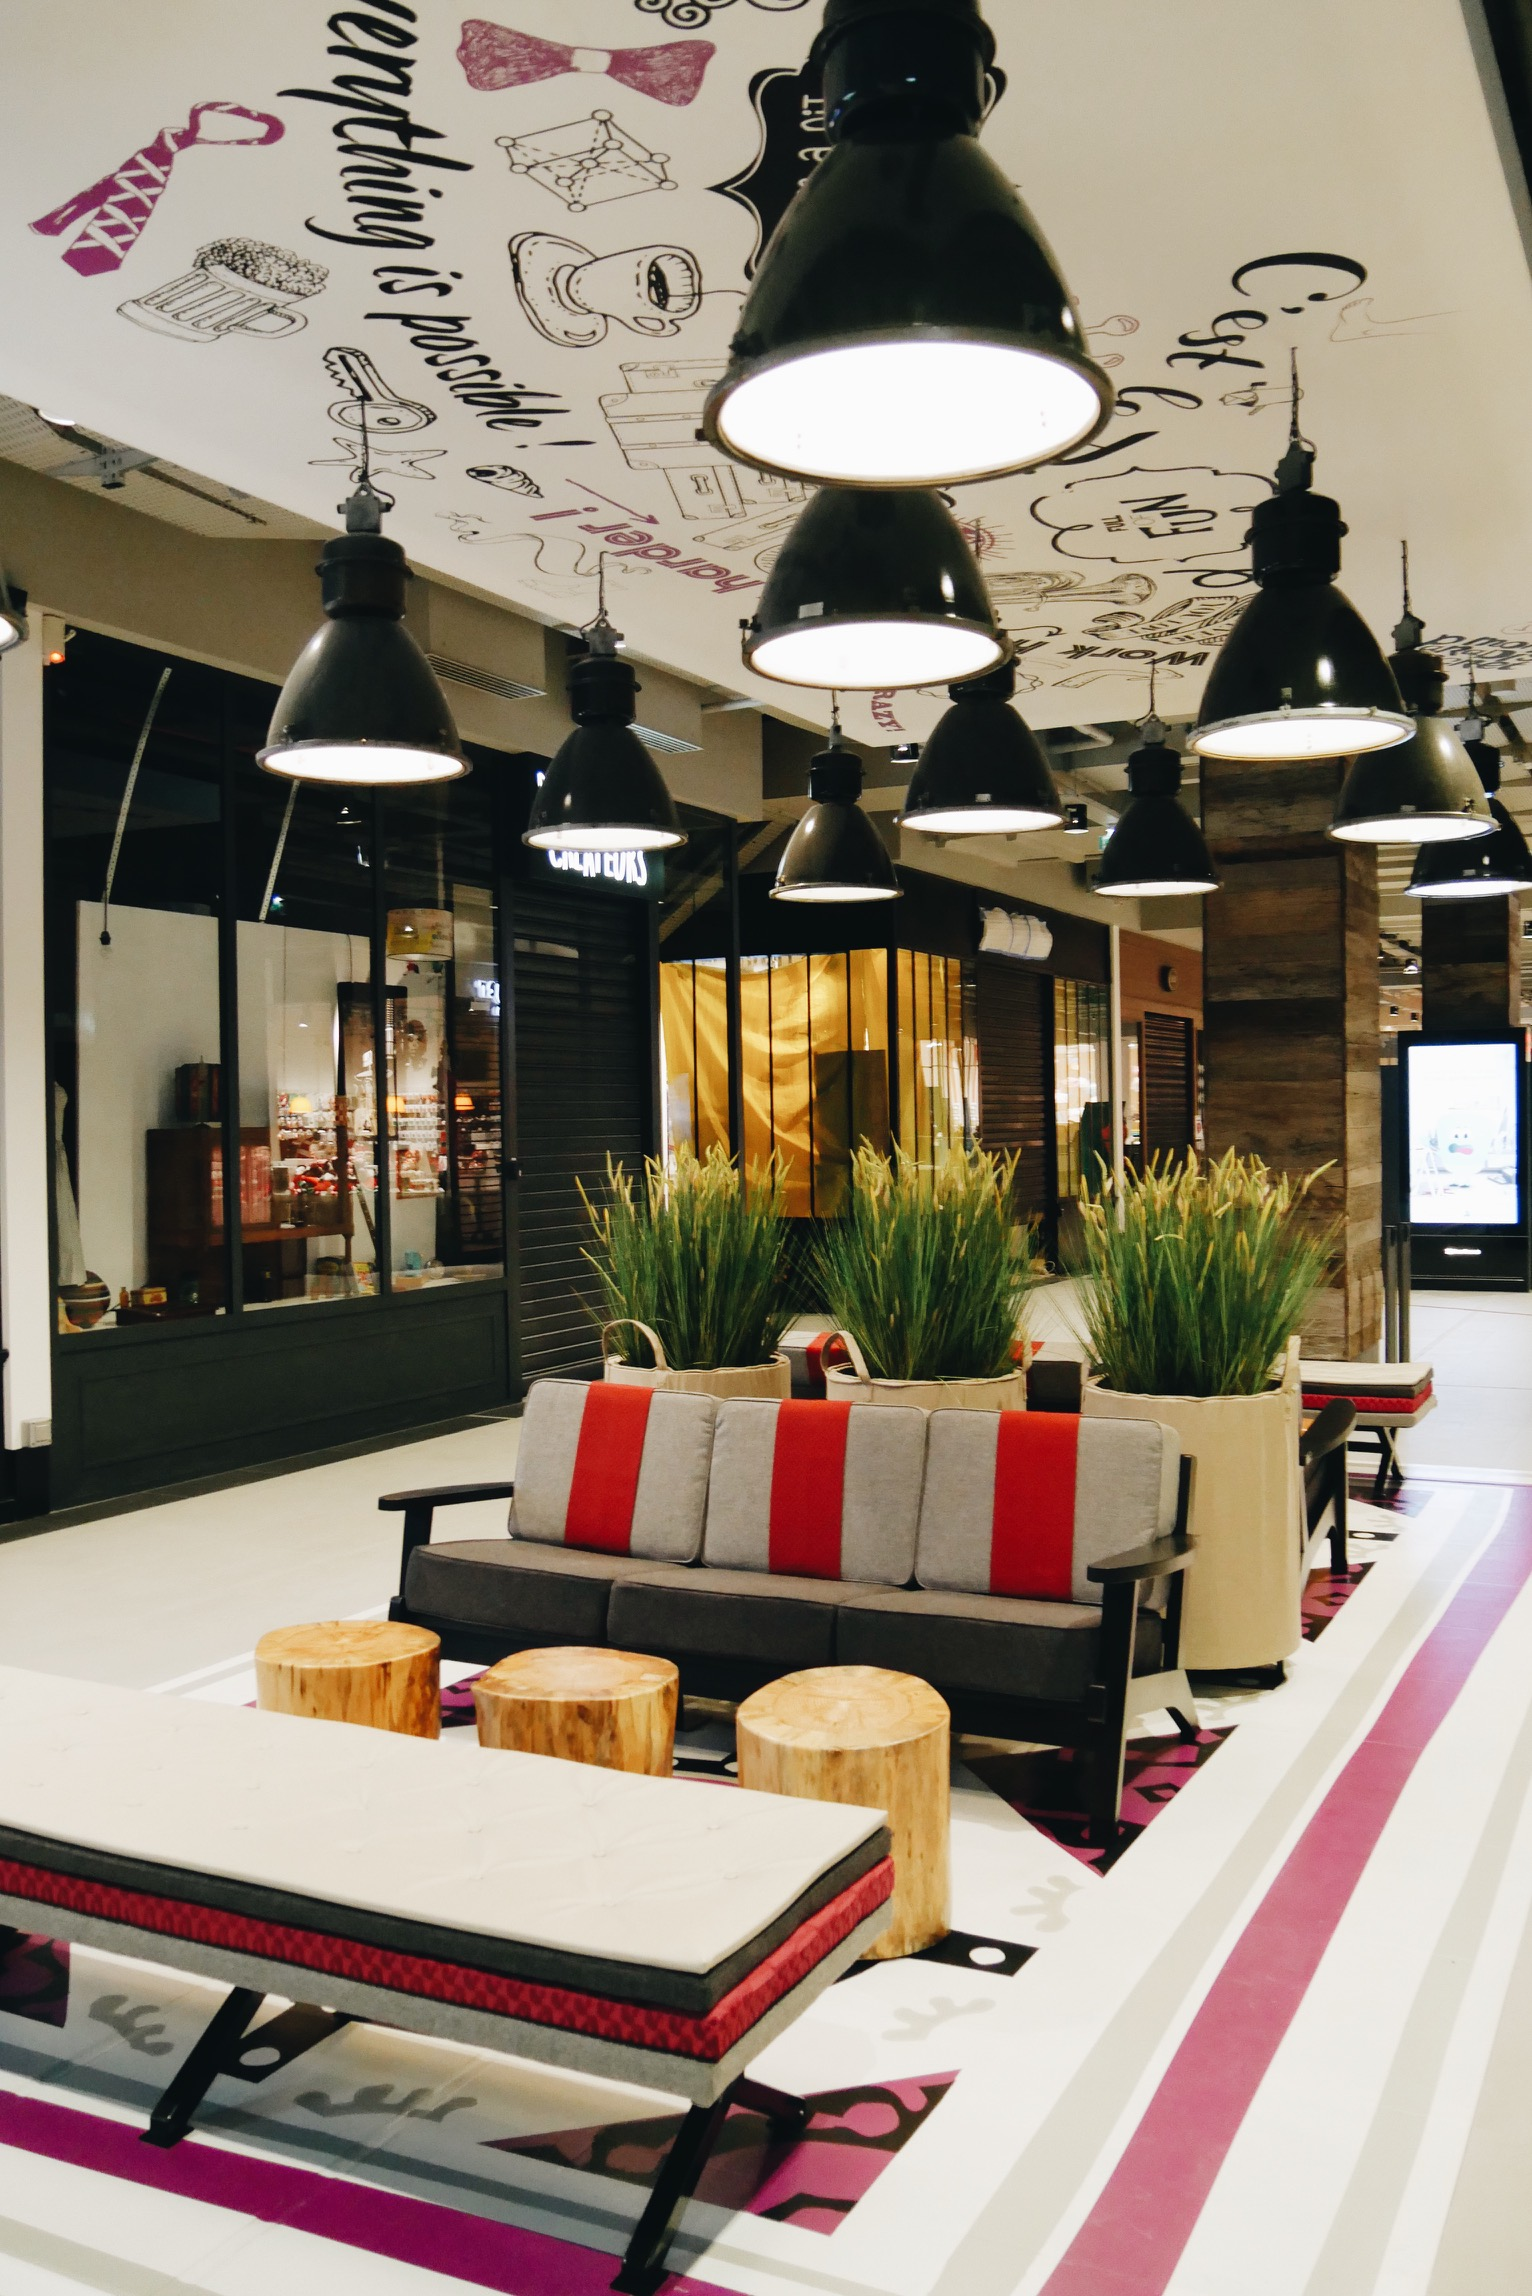 vill 39 up concept stores chute libre et design united states of paris. Black Bedroom Furniture Sets. Home Design Ideas